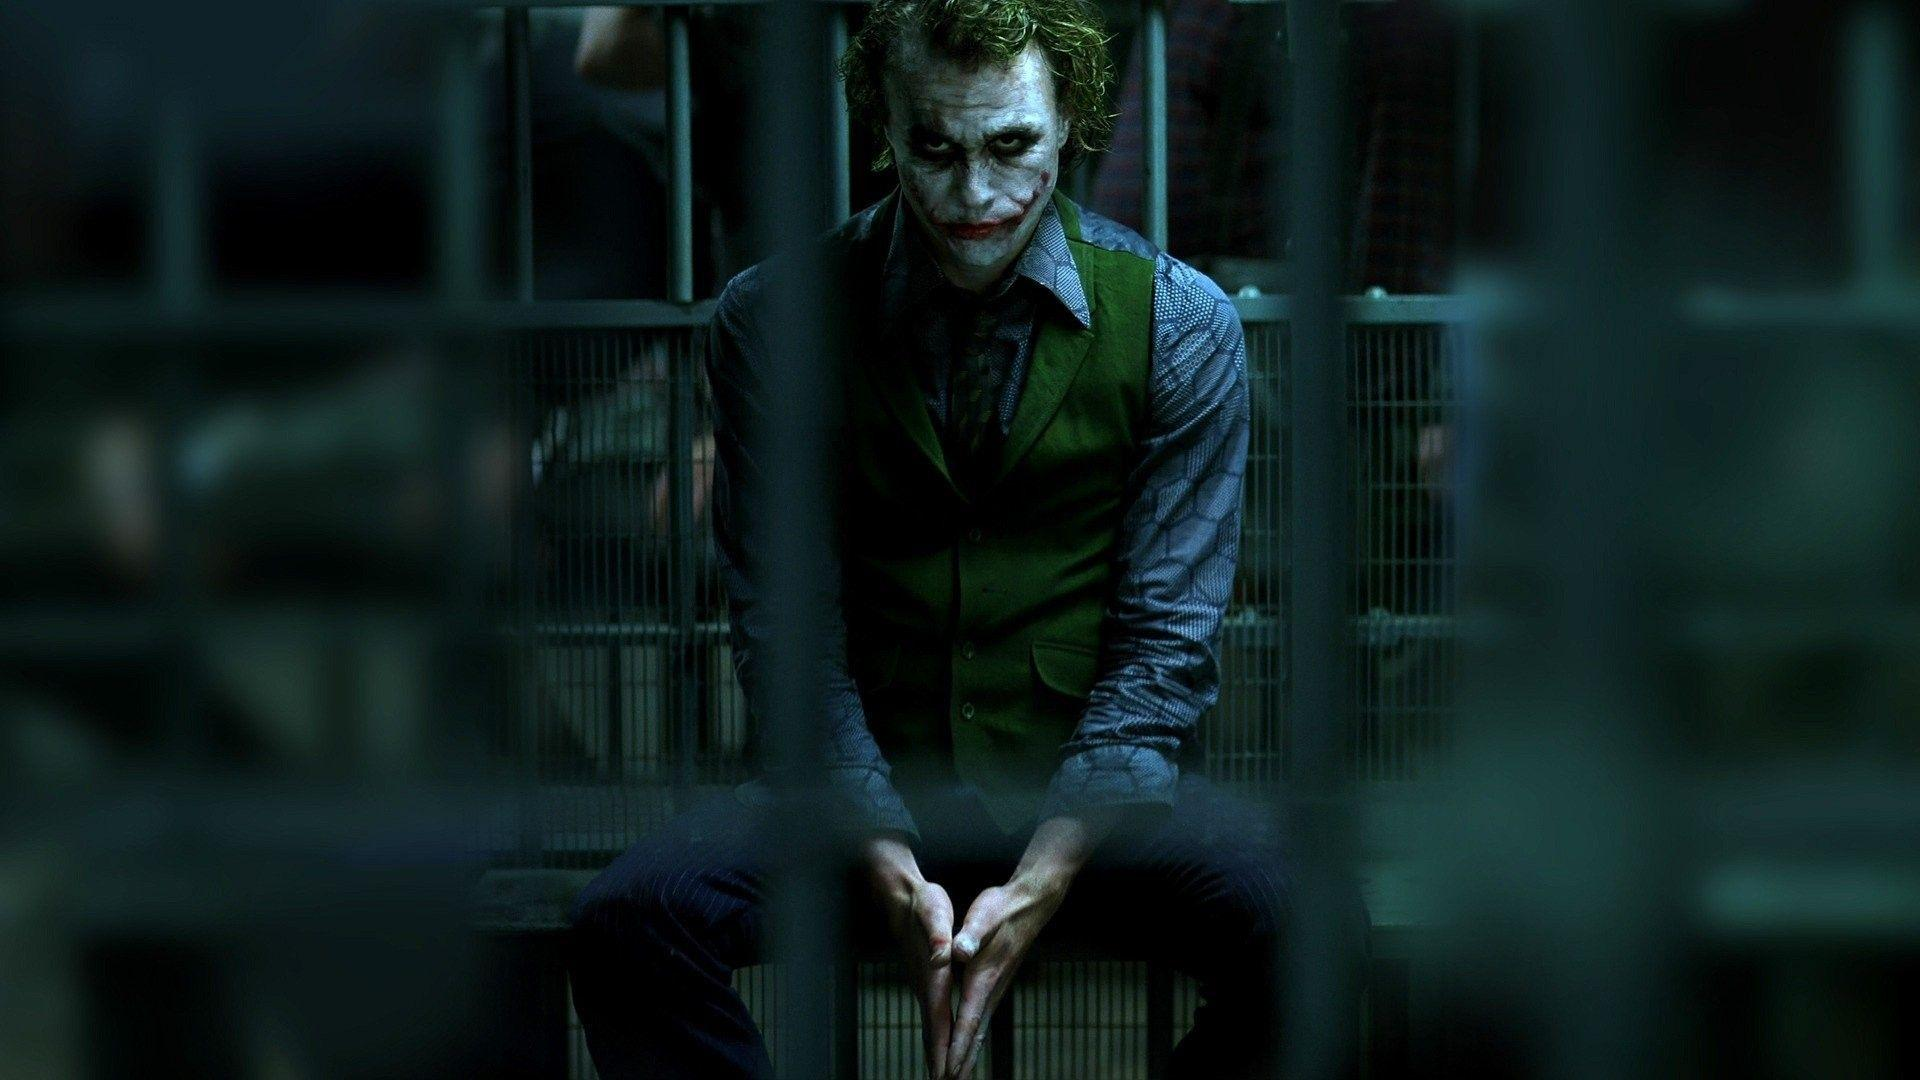 Heath Ledger Joker Wallpapers 1024x768 Wallpaper Cave